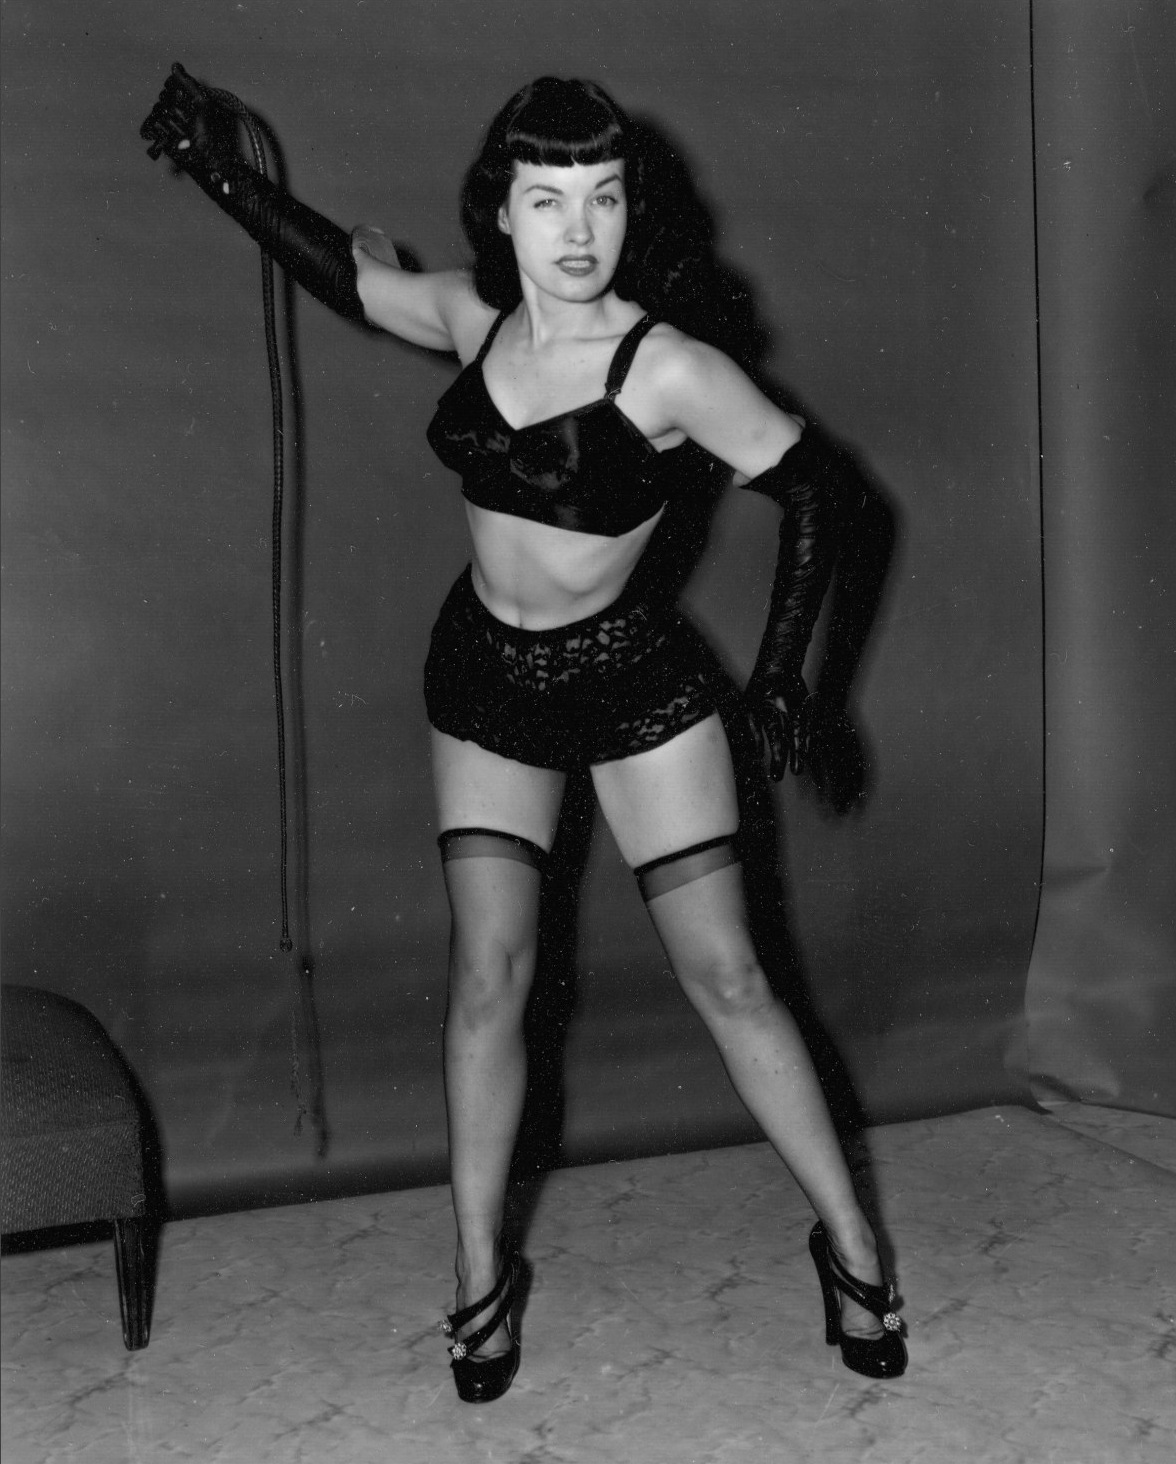 Betty Page Photos: Bettie-page-whip-photo1